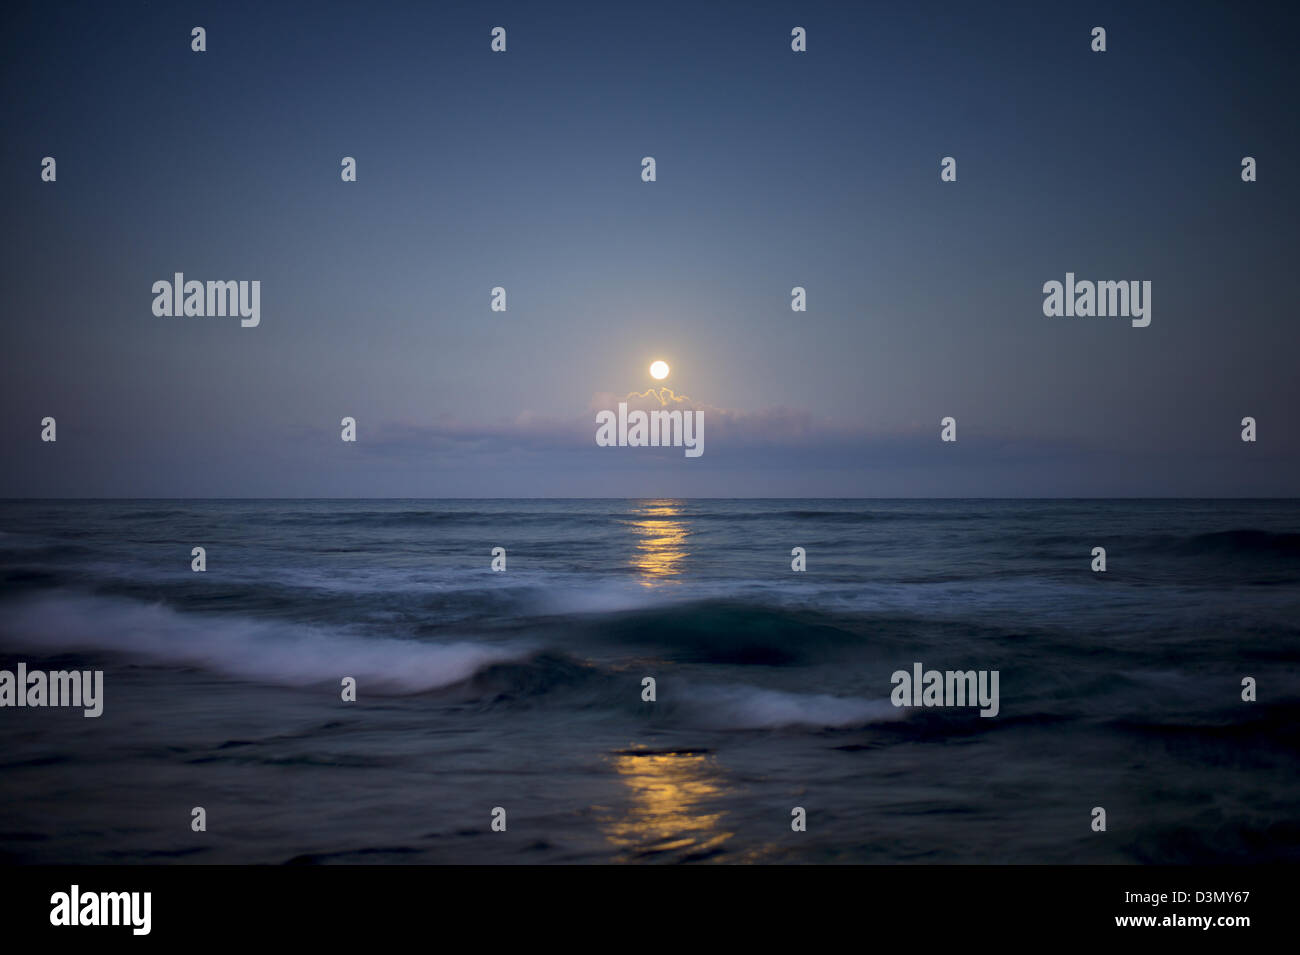 Moonset. Hawaii, The Big Island. - Stock Image